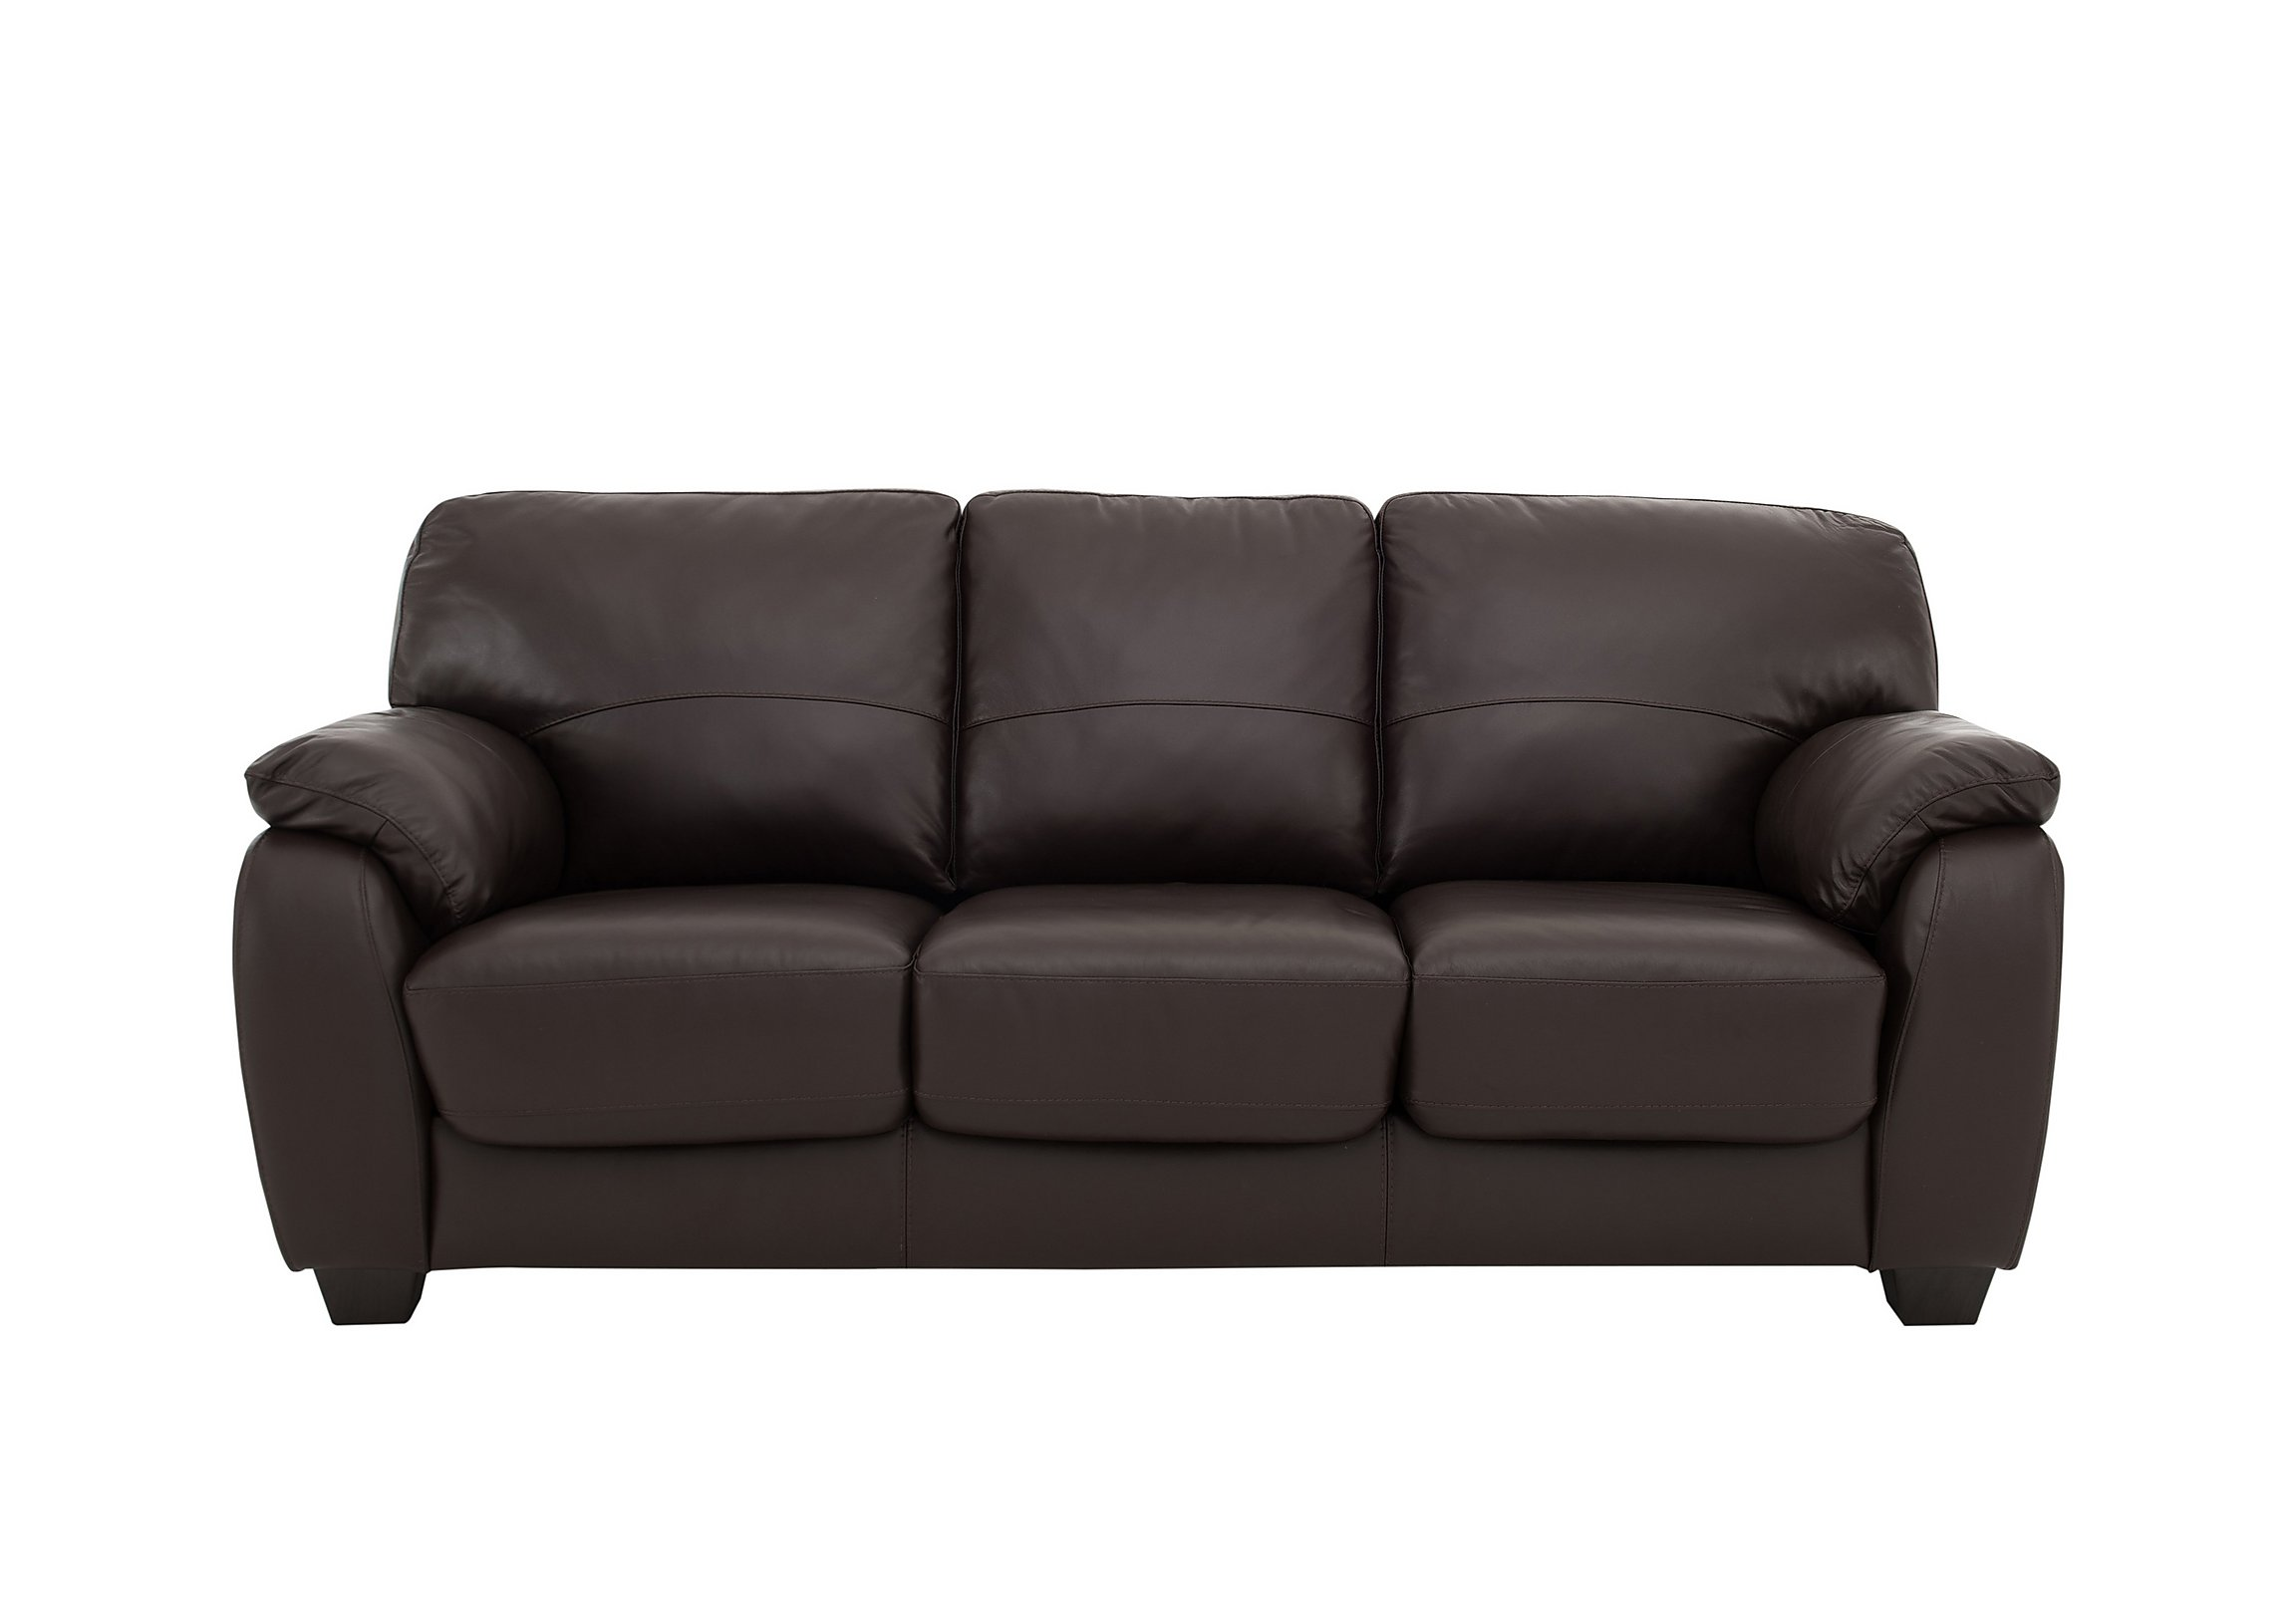 Leather Sofa World - Reviews | Facebook